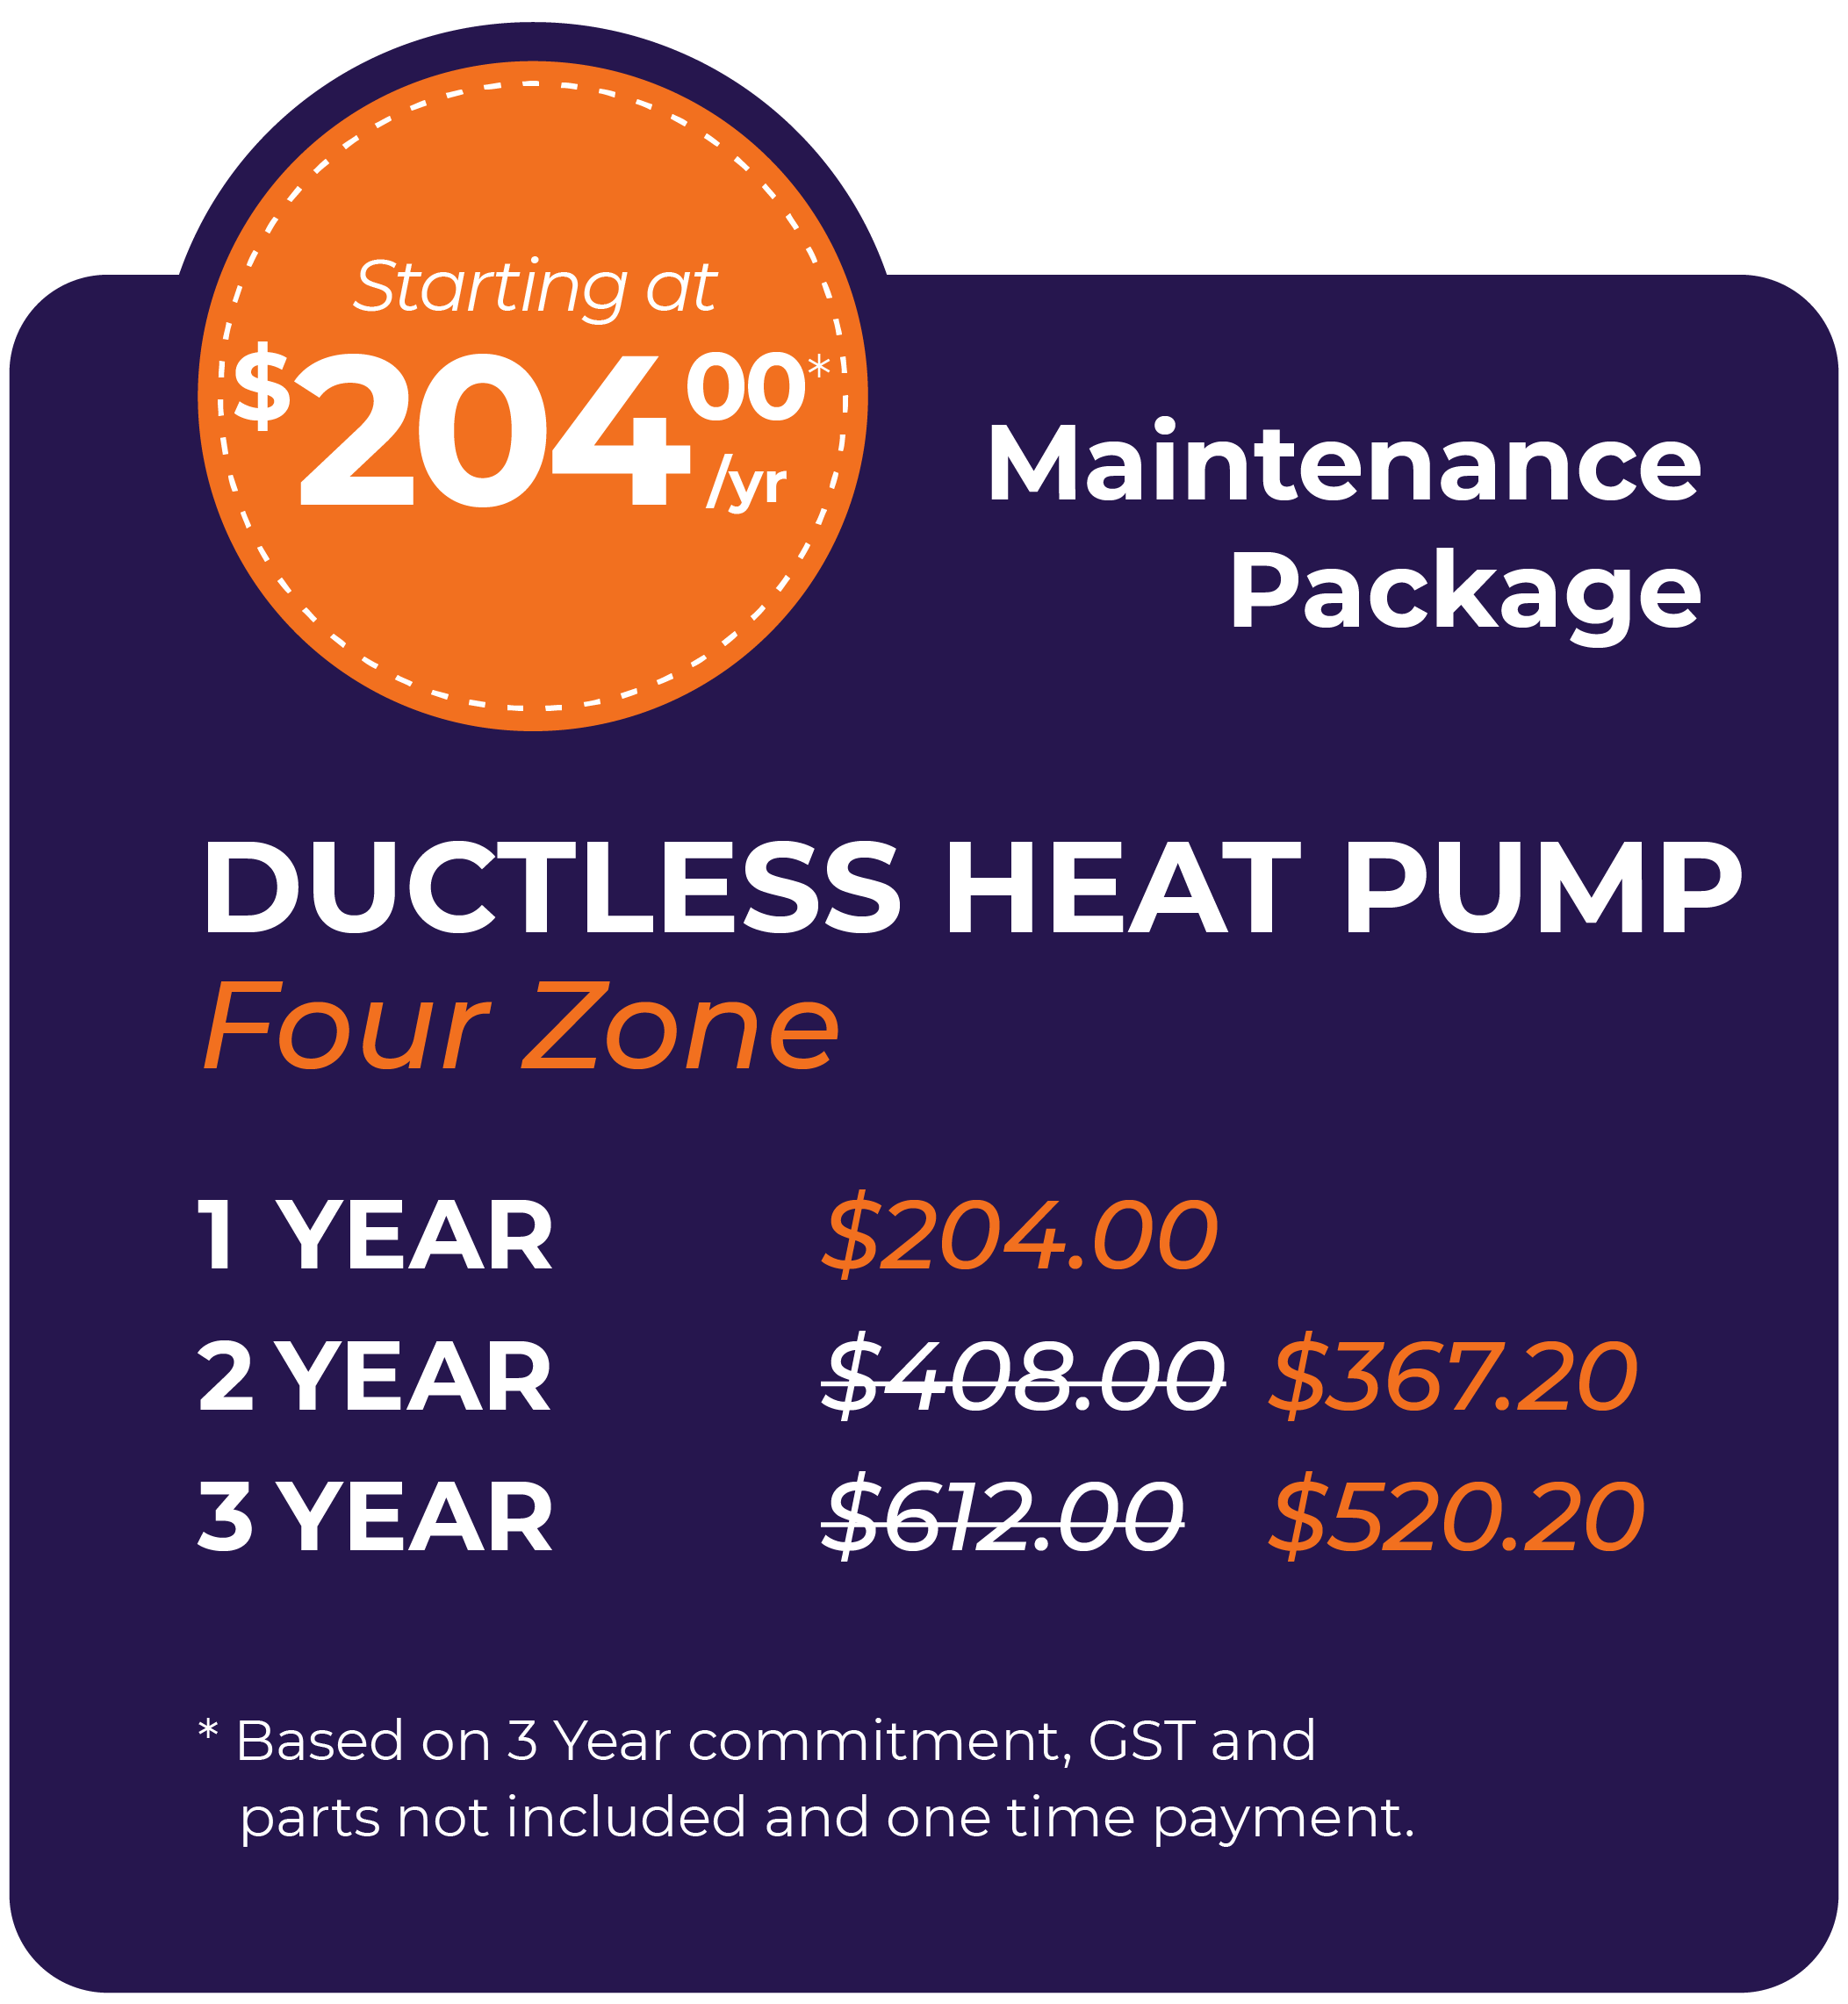 Ductless Heat Pump Four Zone Maintenance Package